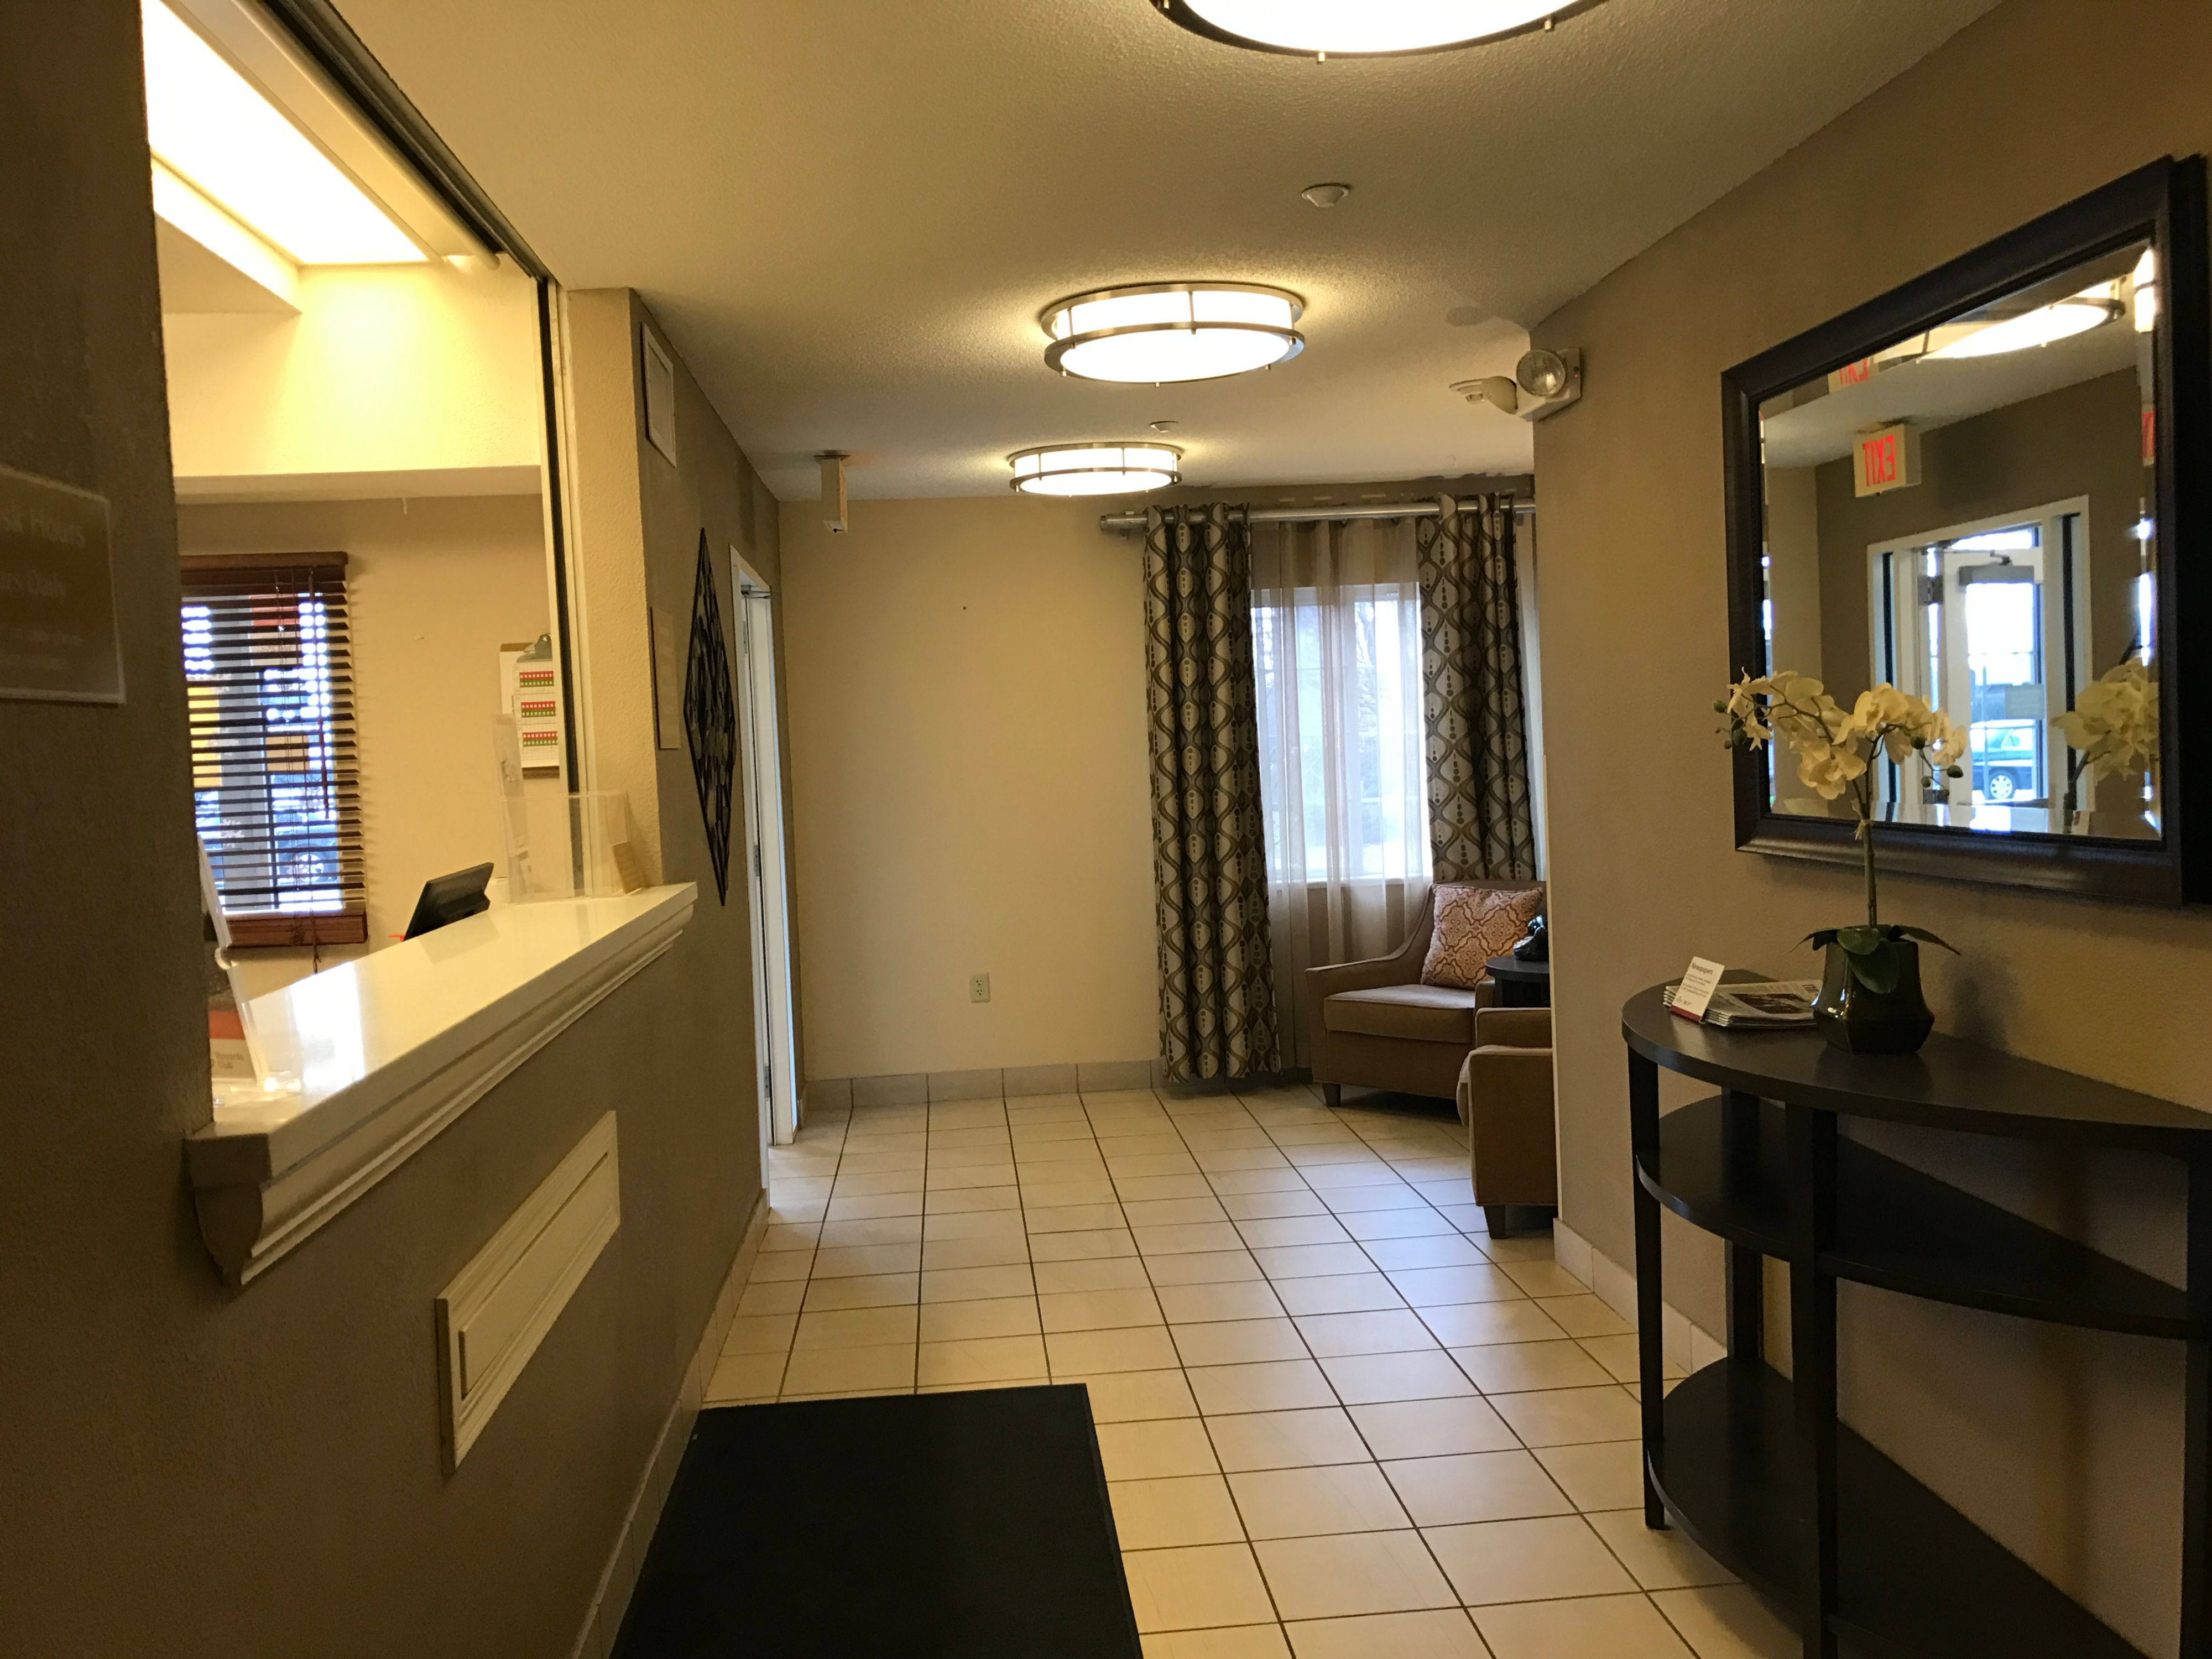 Candlewood Suites Chicago/Naperville image 6